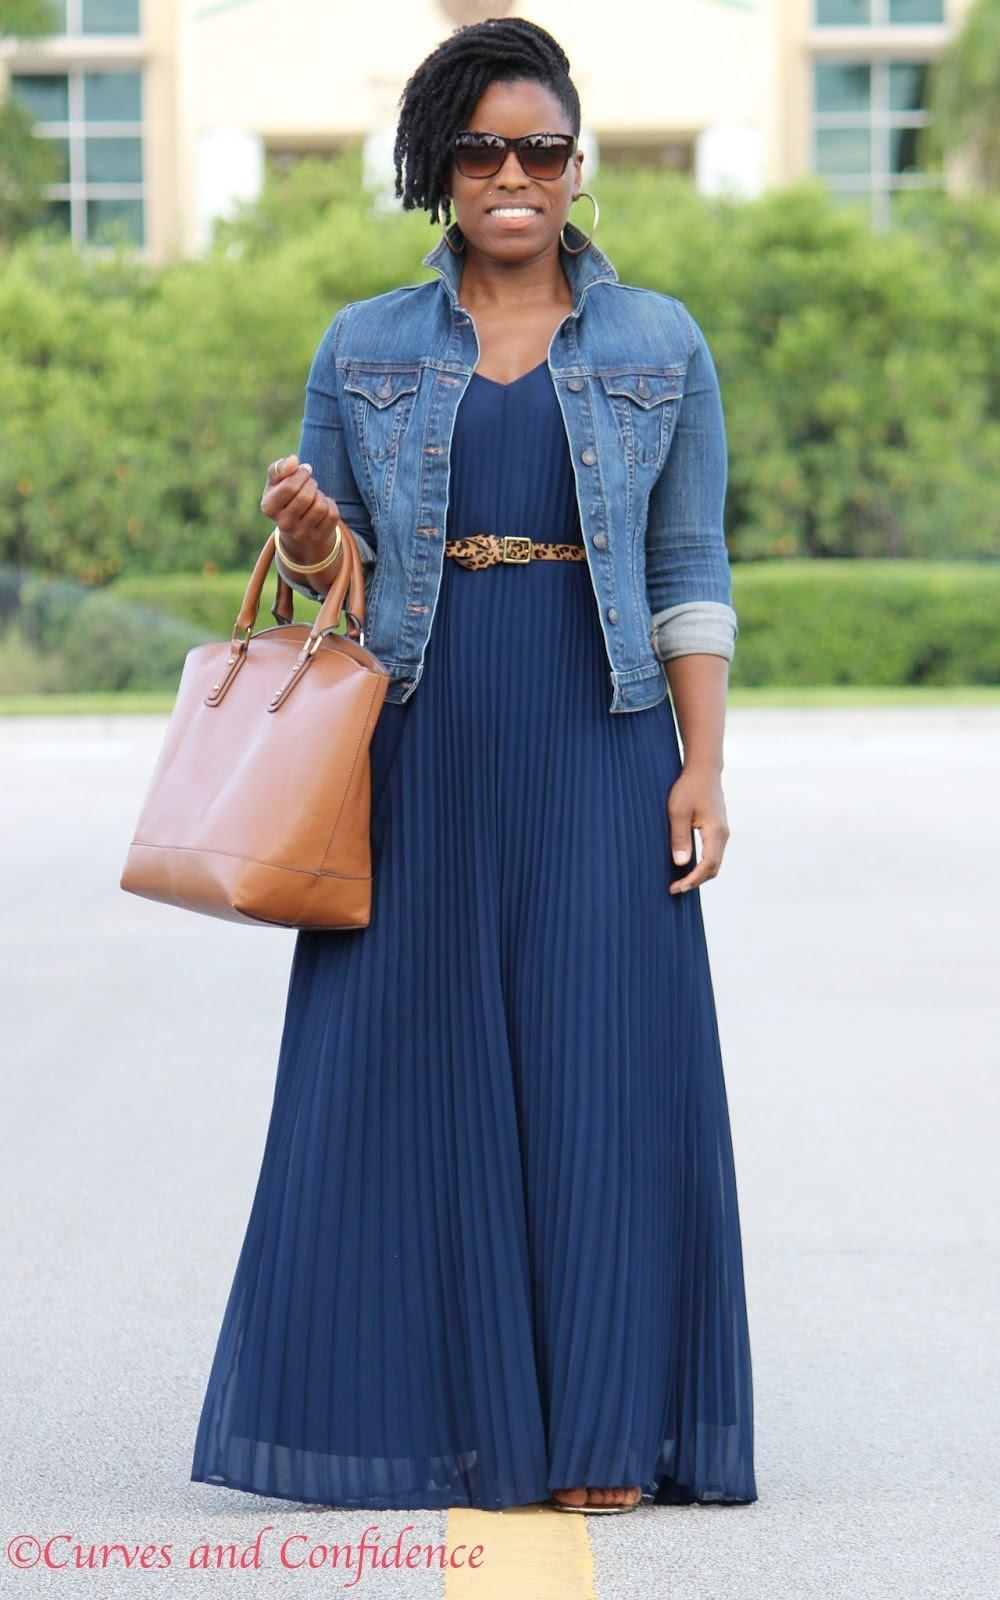 bae4e2e8319 20 Cute Outfit Ideas for Curvy Ladies to Look Awesome